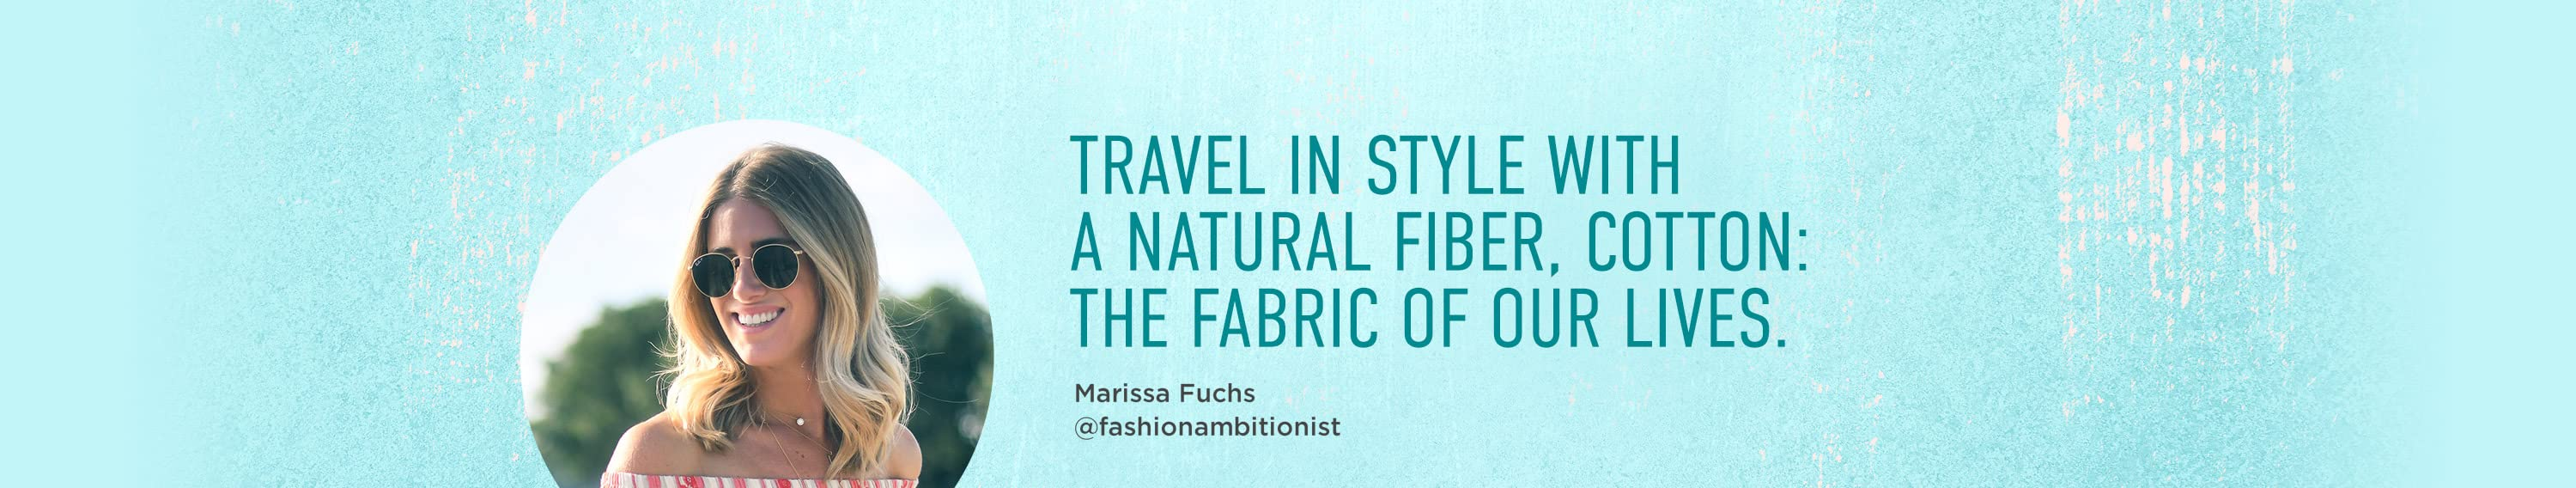 TRAVEL IN STYLE WITH A NATURAL FIBER, COTTON:THE FABRIC OF OUR LIVES.